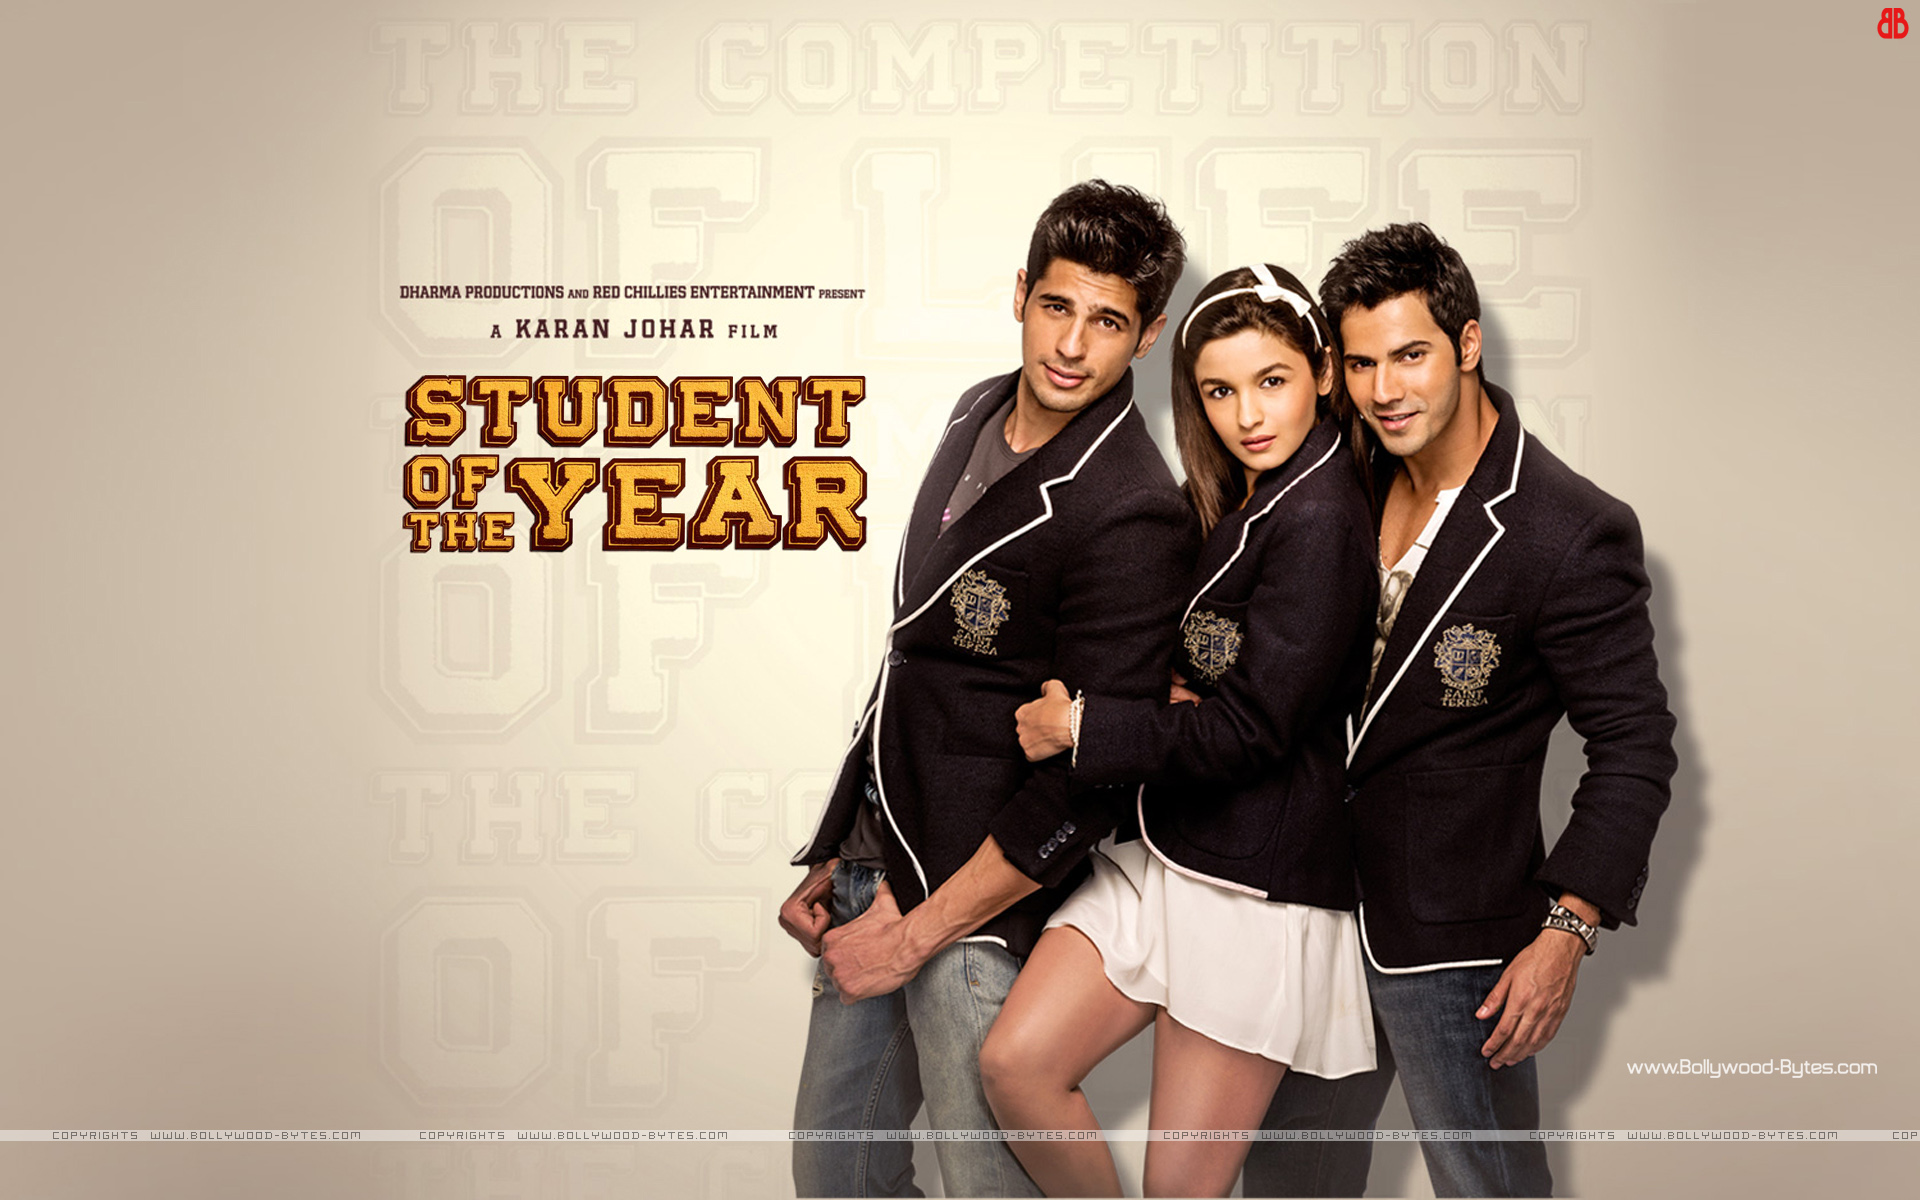 http://3.bp.blogspot.com/-if0h18icm3U/UGIQn1EhqOI/AAAAAAAAPs8/vE3kM2JDu54/s1920/Student-Of-The-Year-+Hot-Alia-Bhatt-Varun-Dhawan-Sidharth-Malhotra-HD-Wallaper-24.jpg